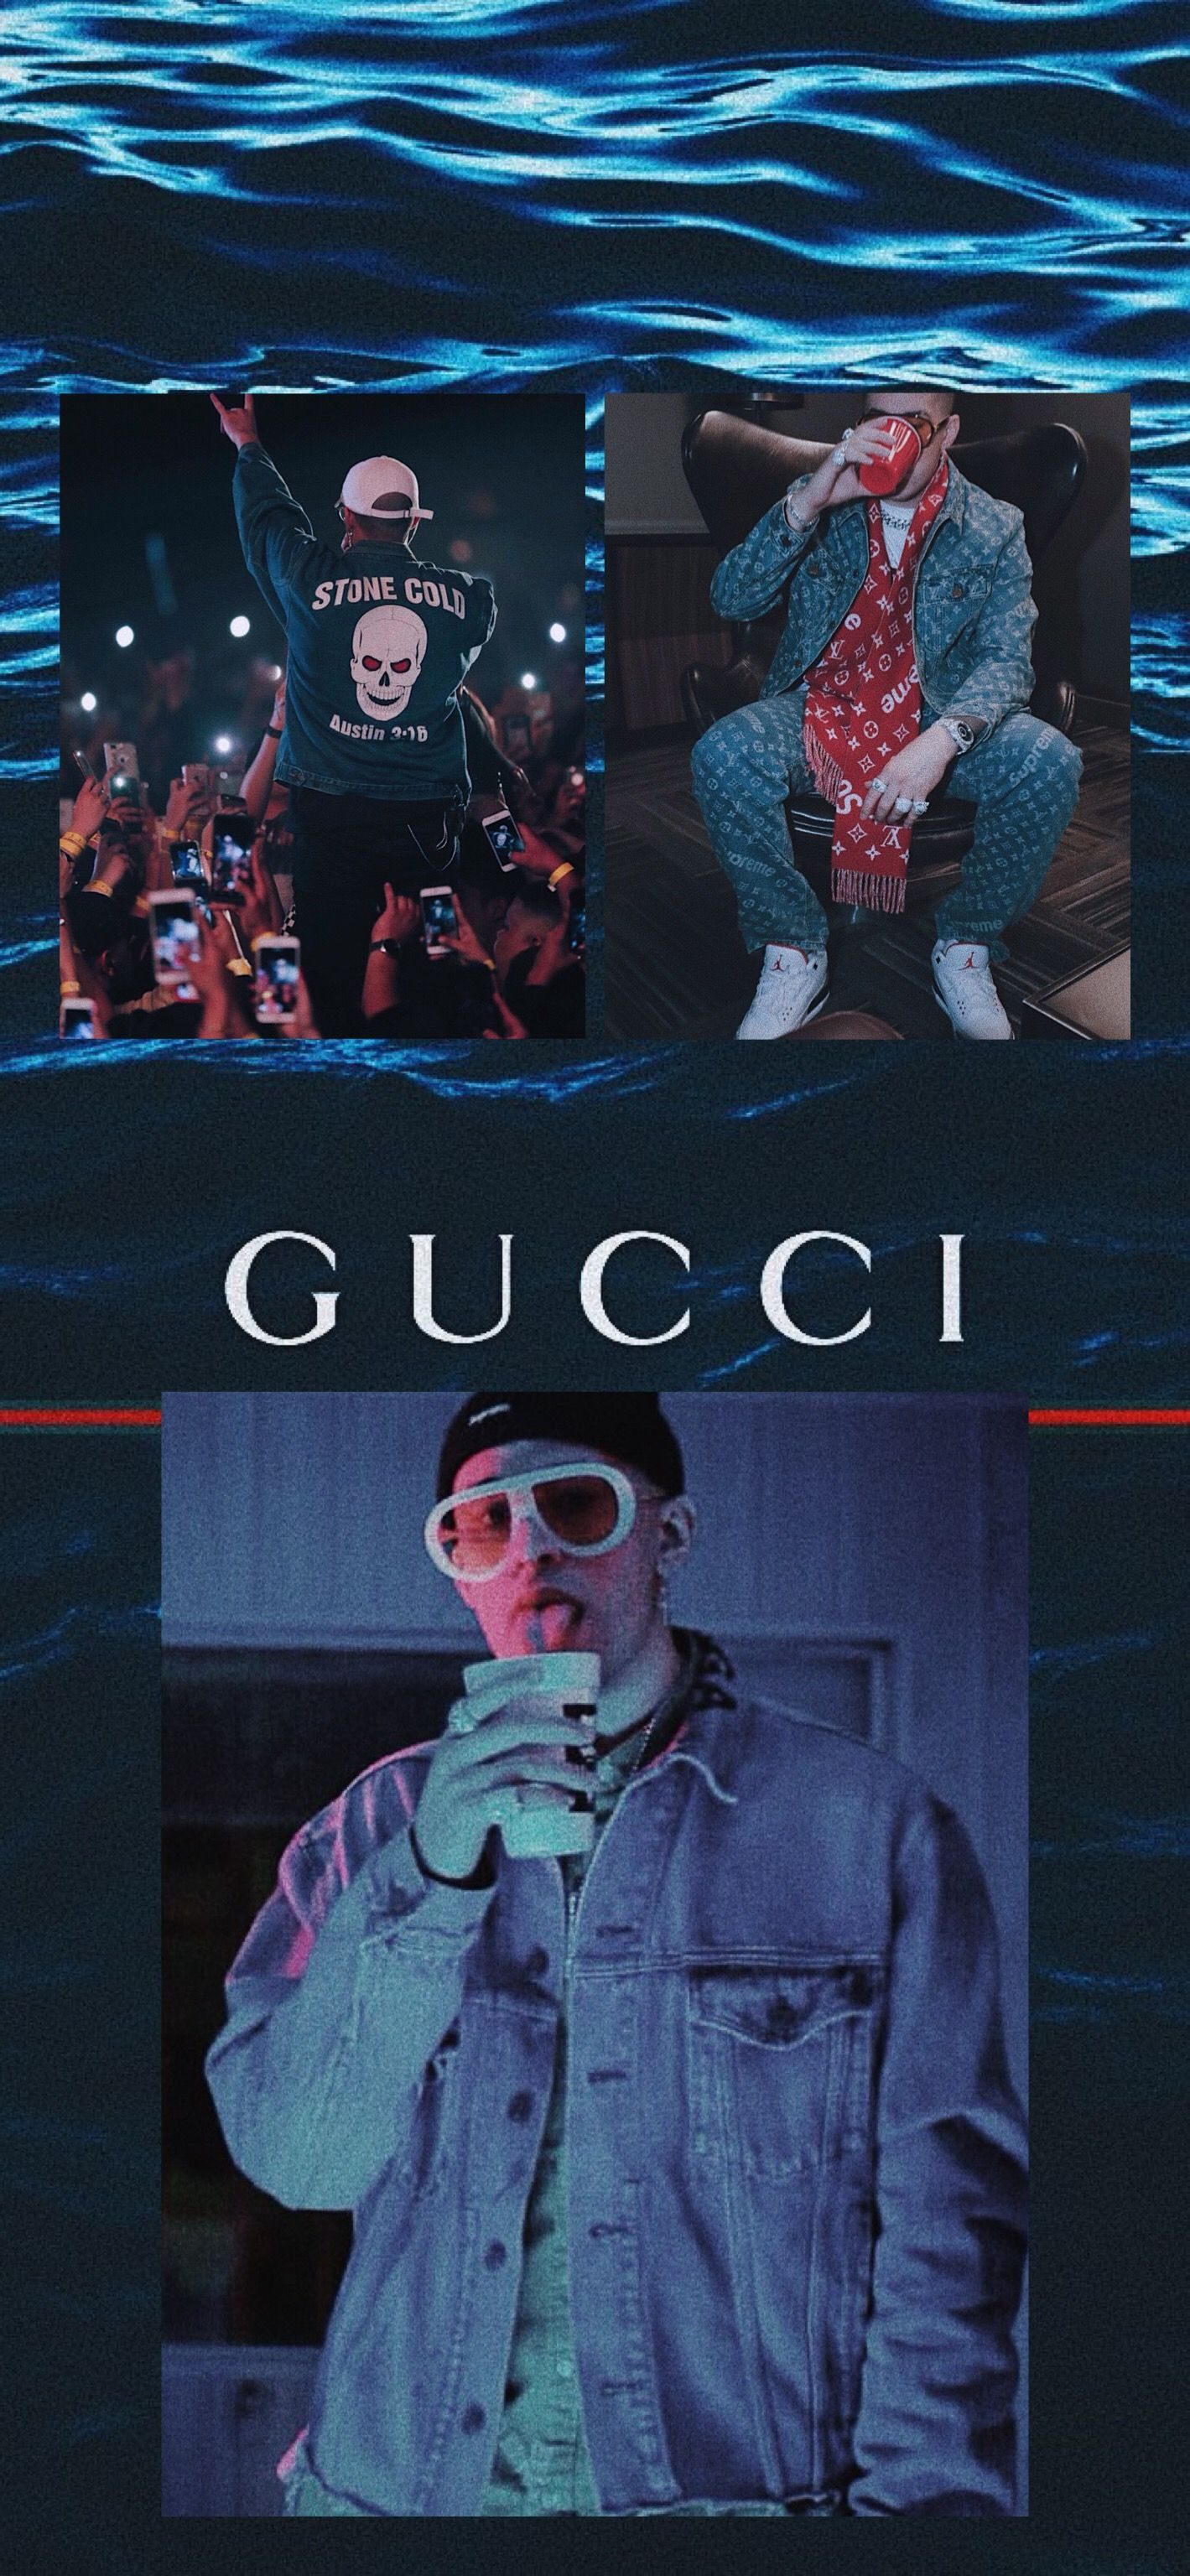 ᴘɪɴᴛᴇʀᴇsᴛ xxʙʀ33xx // bad bunny wallpaper Bunny wallpaper